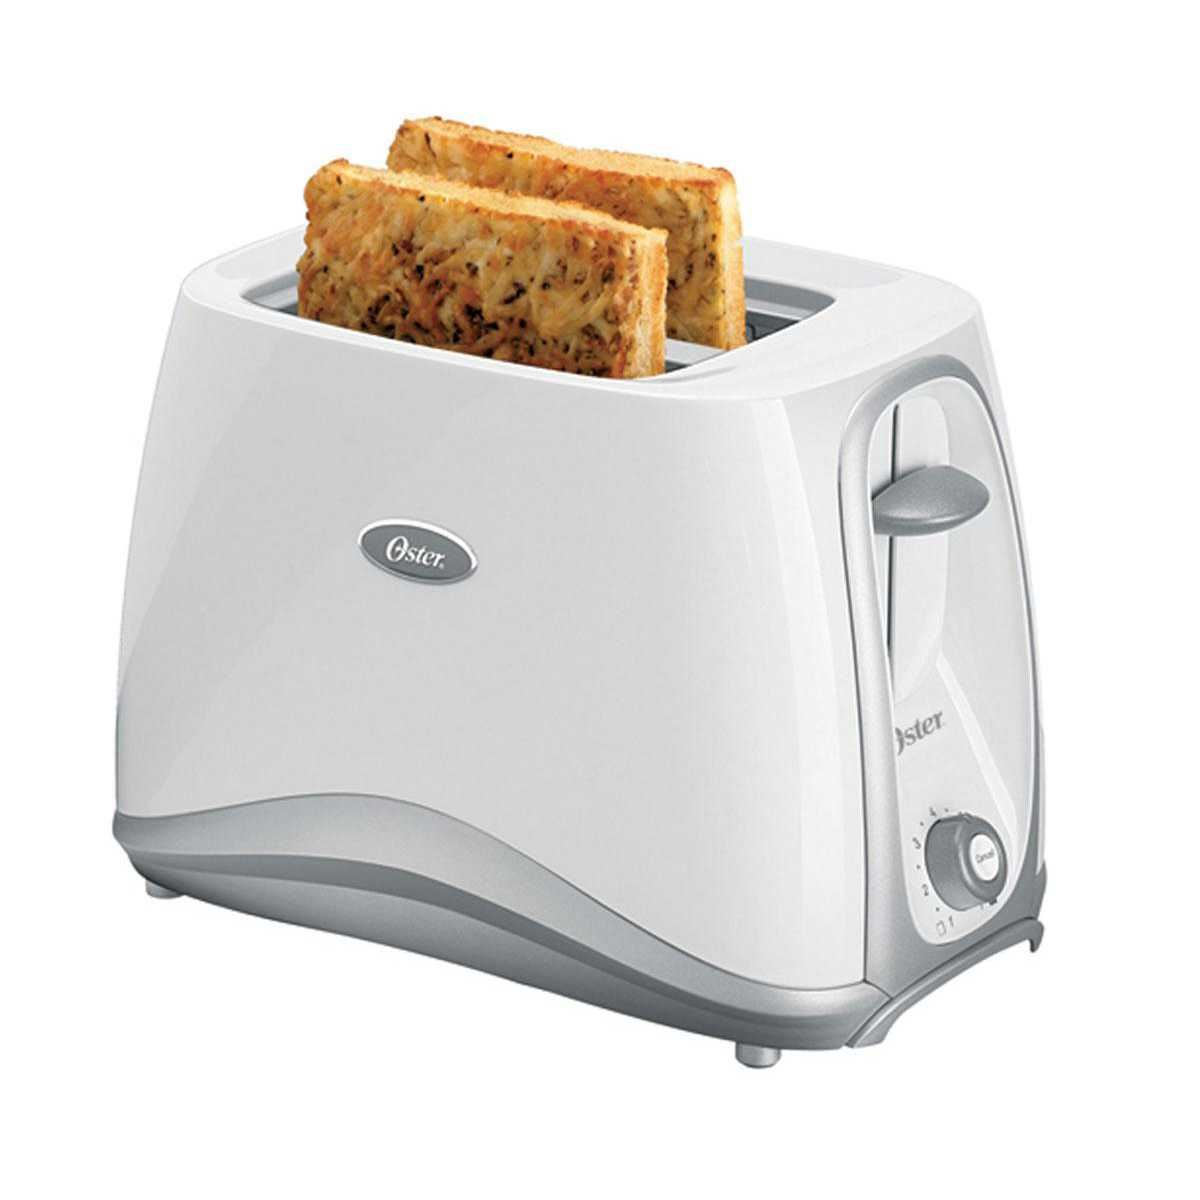 Picture of Oster Pop Up Toaster 6544